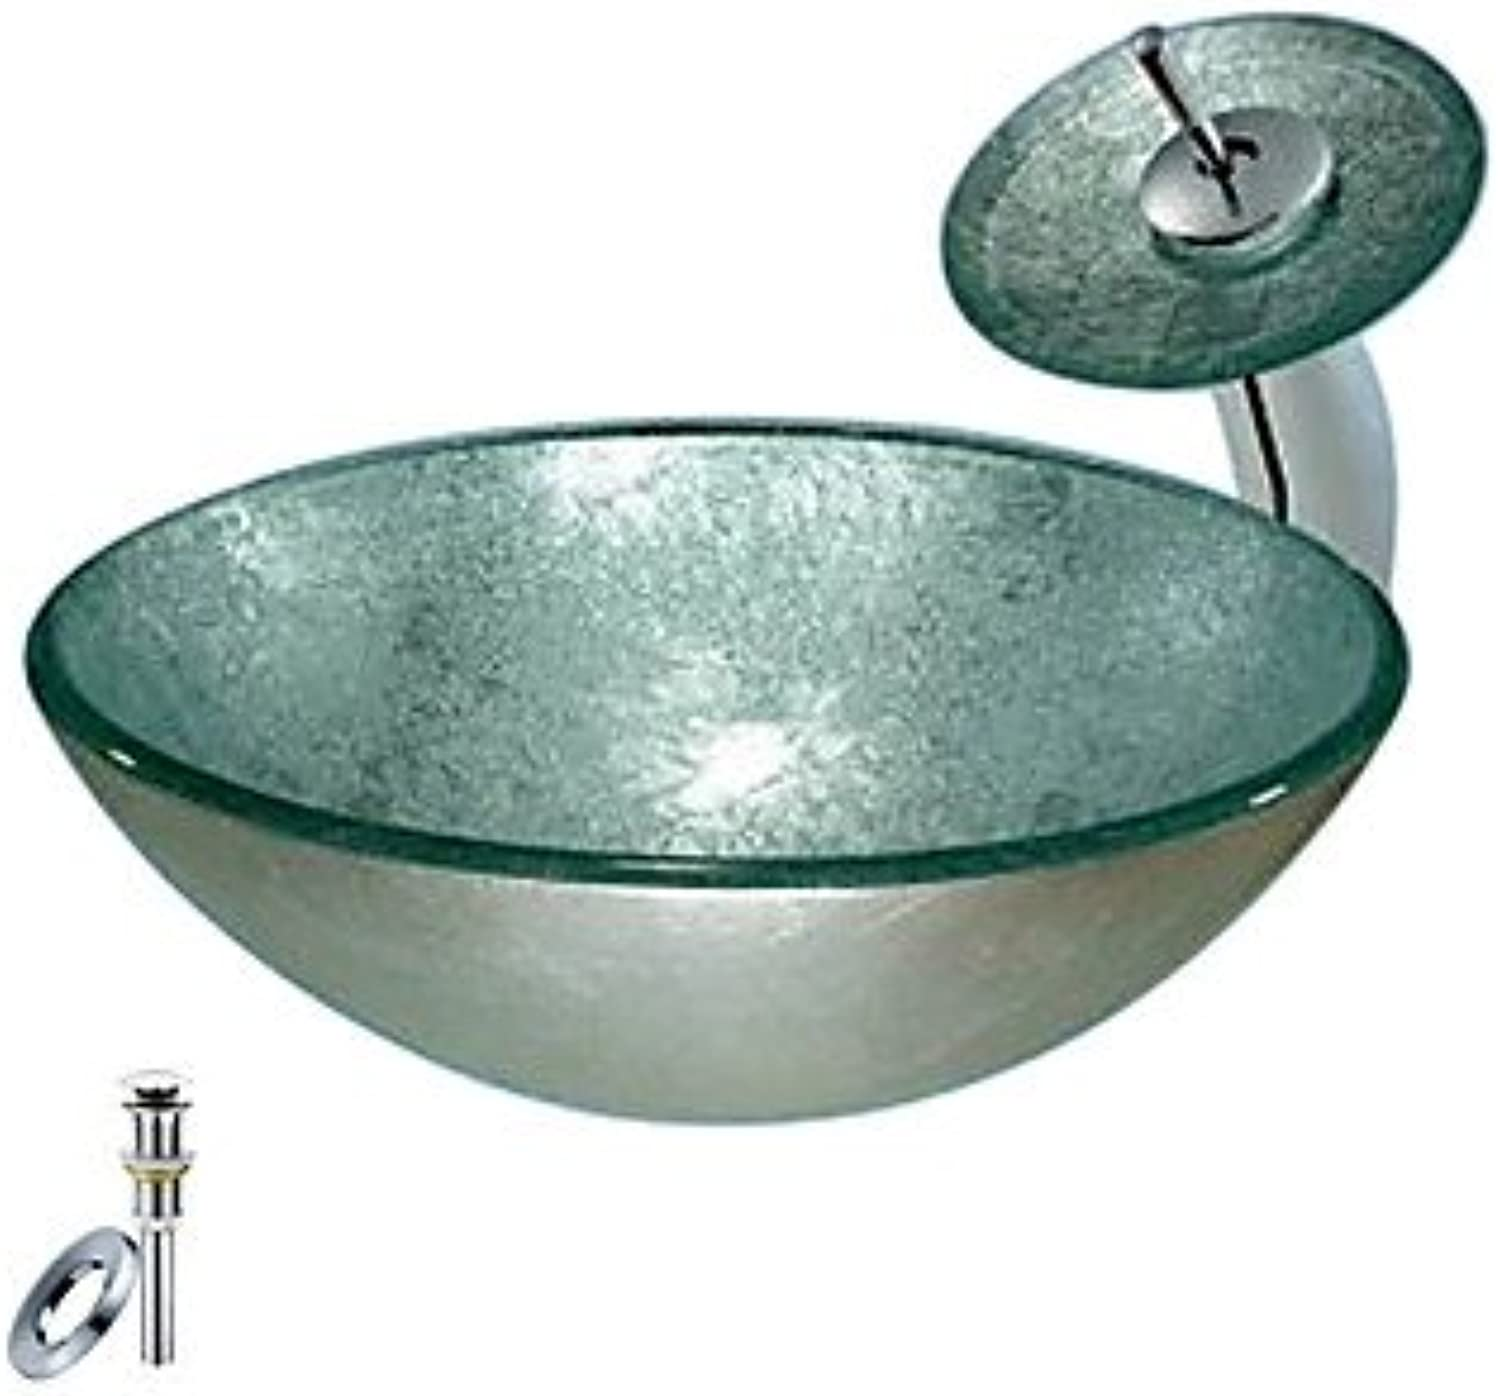 Bronze Round Tempered glass Vessel Sink With Waterfall Faucet, Mounting Ring and Water Drain(0888-C-BLY-6552-WF)